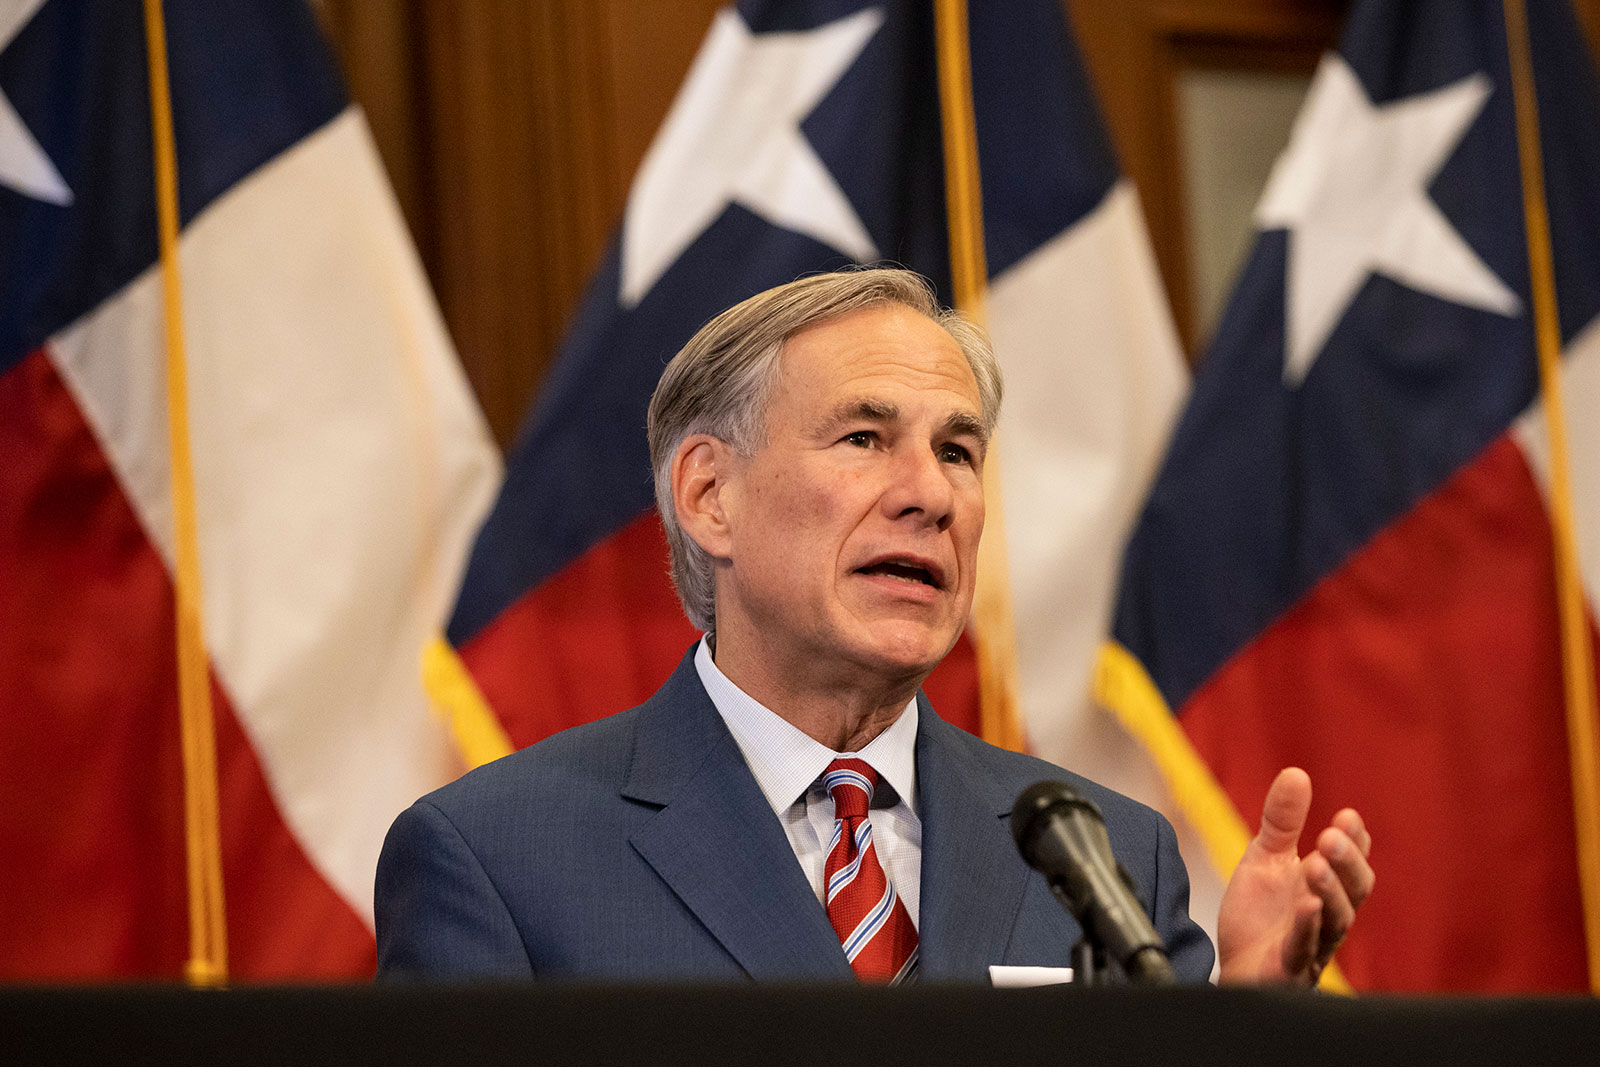 Texas Gov. Greg Abbott speaks at a press conference in Austin on May 18, 2020.